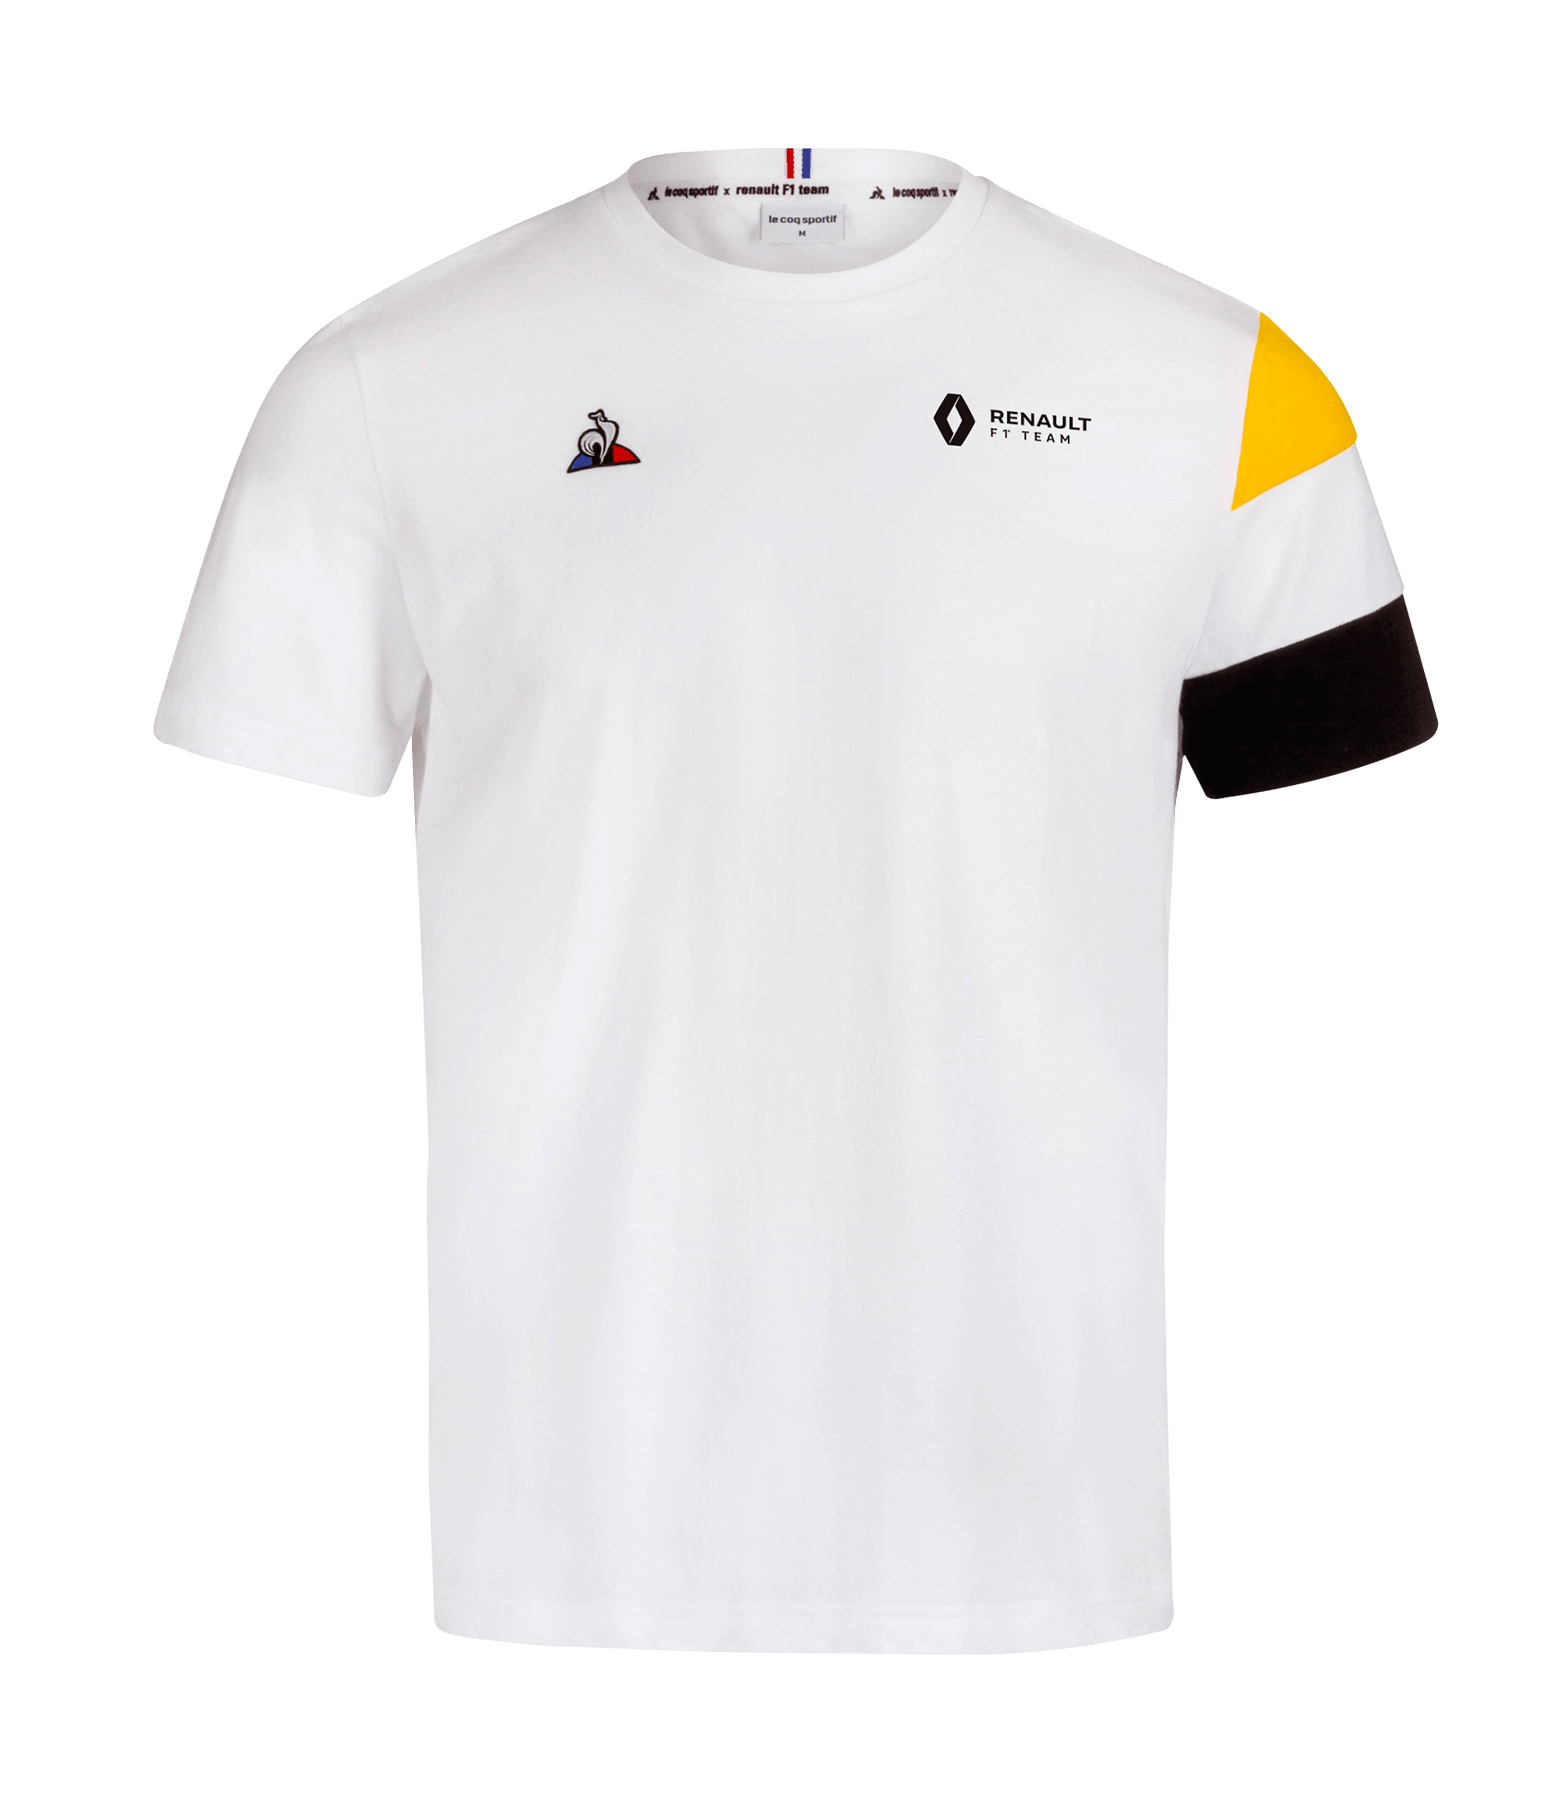 RENAULT F1® TEAM fan men's T-shirt - white